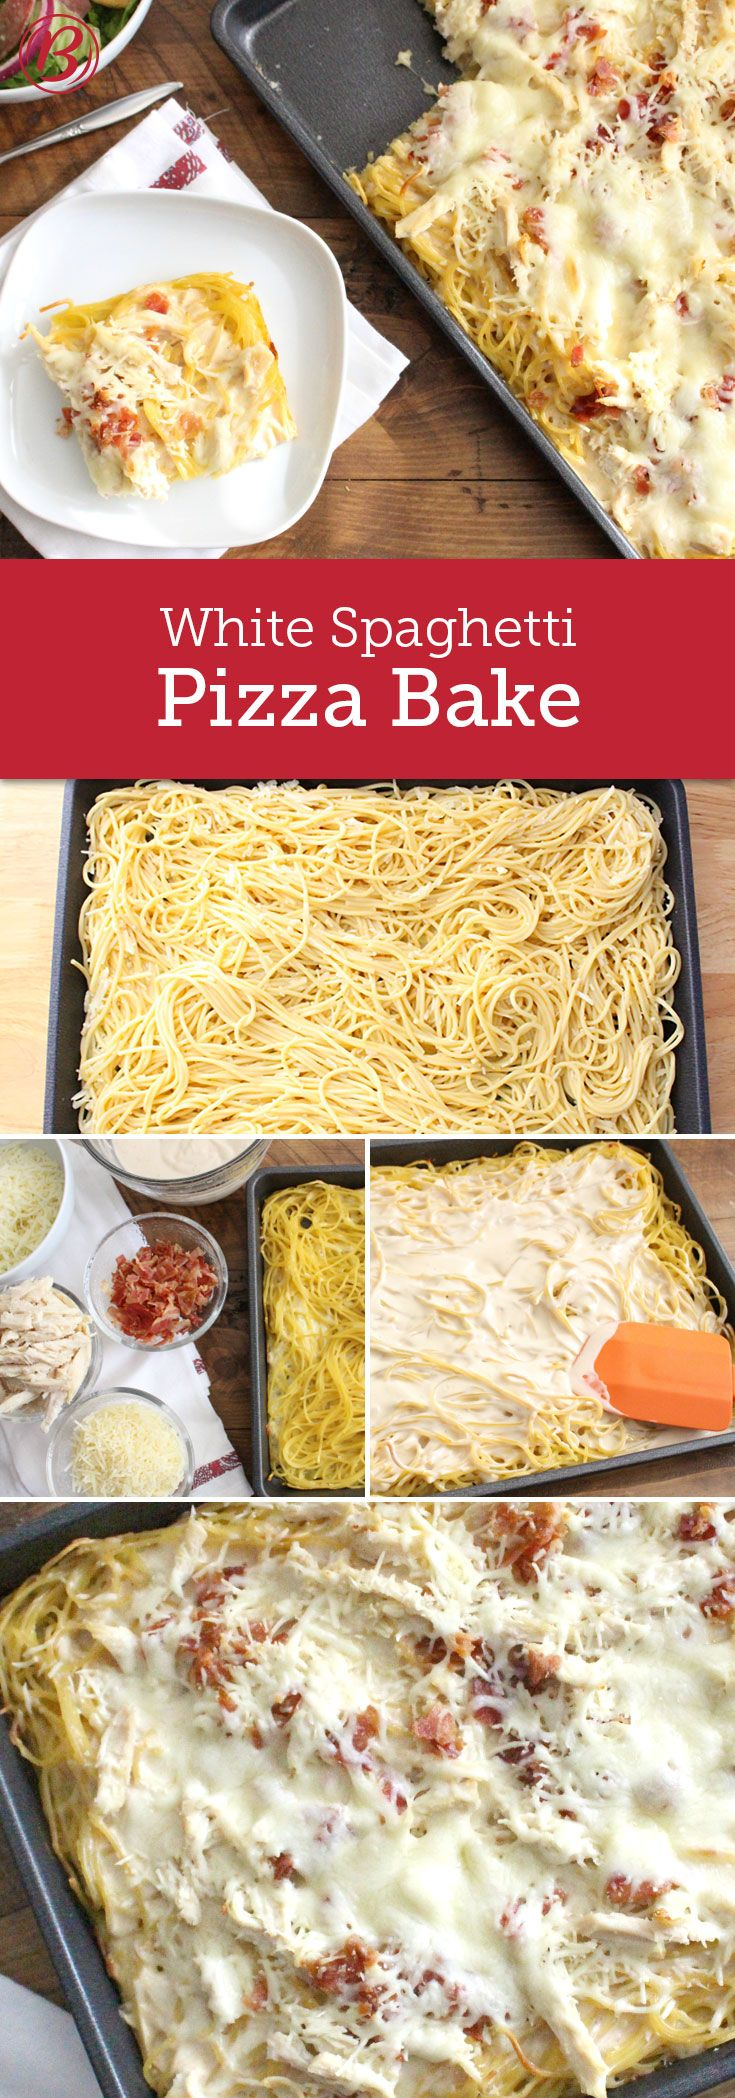 "White pizza toppings including creamy Alfredo sauce, chicken, bacon and mozzarella get piled onto a tasty spaghetti ""crust"" making this twist on our popular Spaghetti Pizza a must-try! Just add a green salad and garlic bread for a full-on family-friendly feast!"